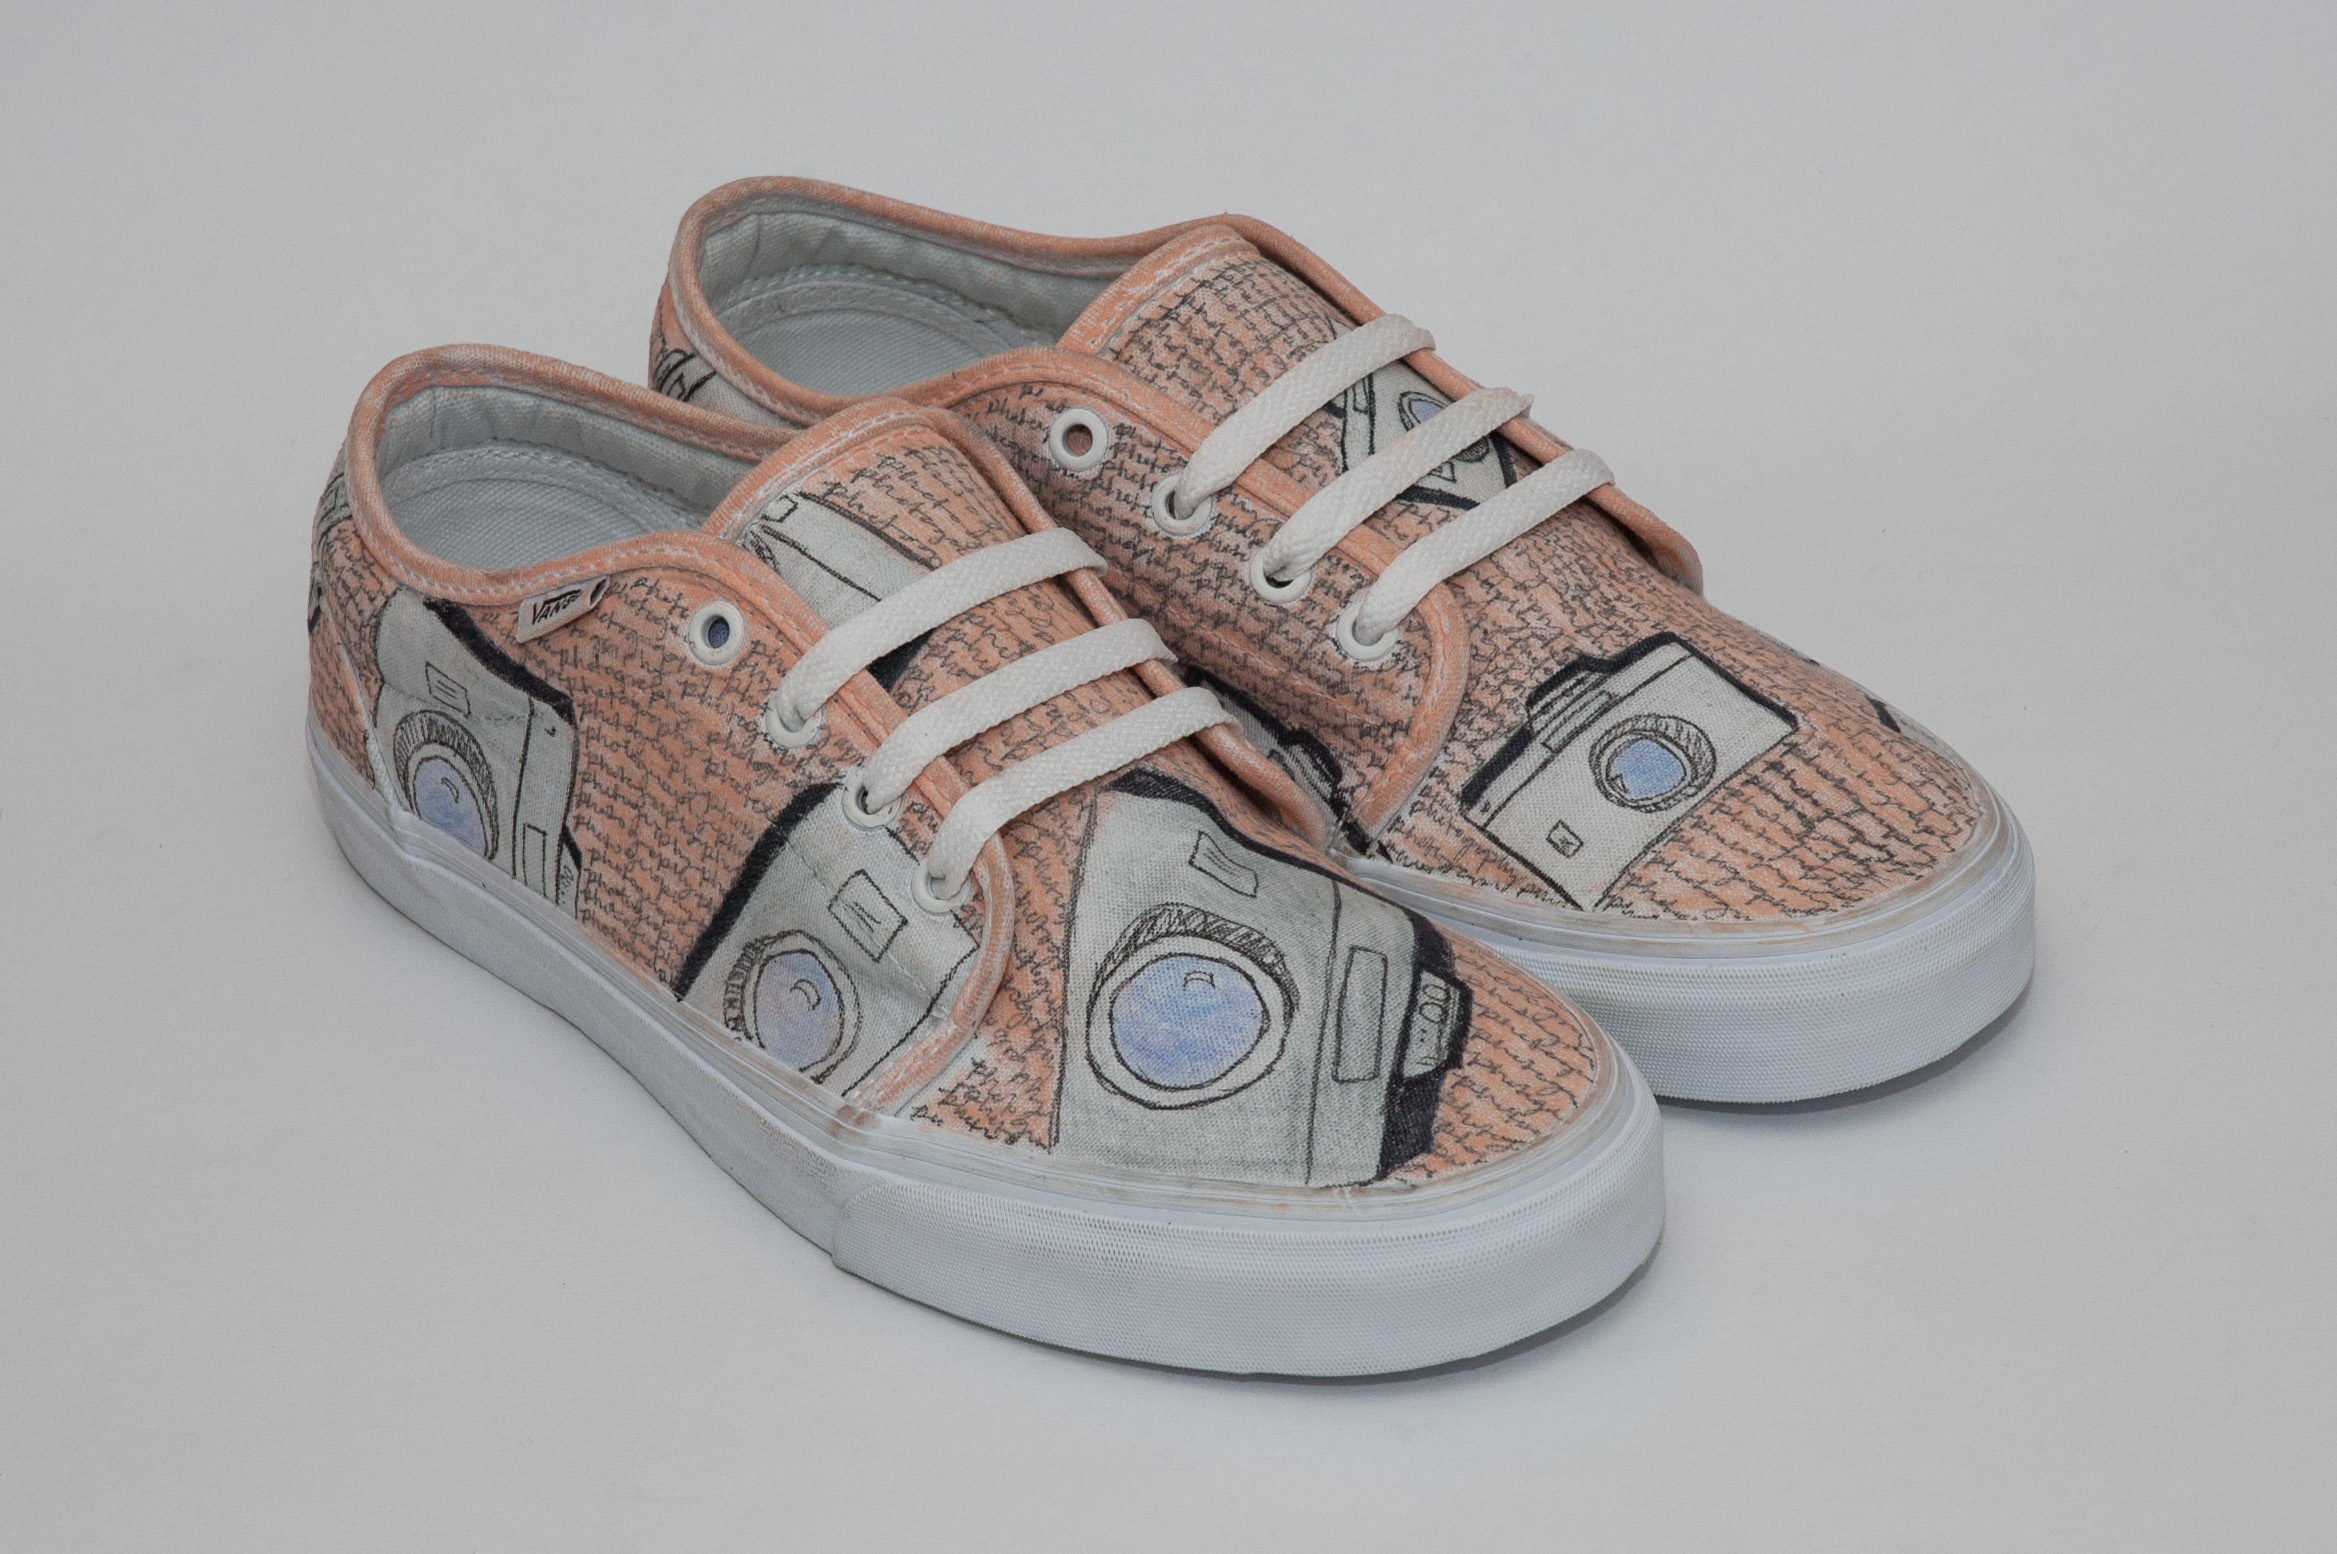 93c5b21d1b587d LPS-SJ 2014 4 vans-10. What do you think  Can we win it  Would you wear any  of these  Do you like any of them